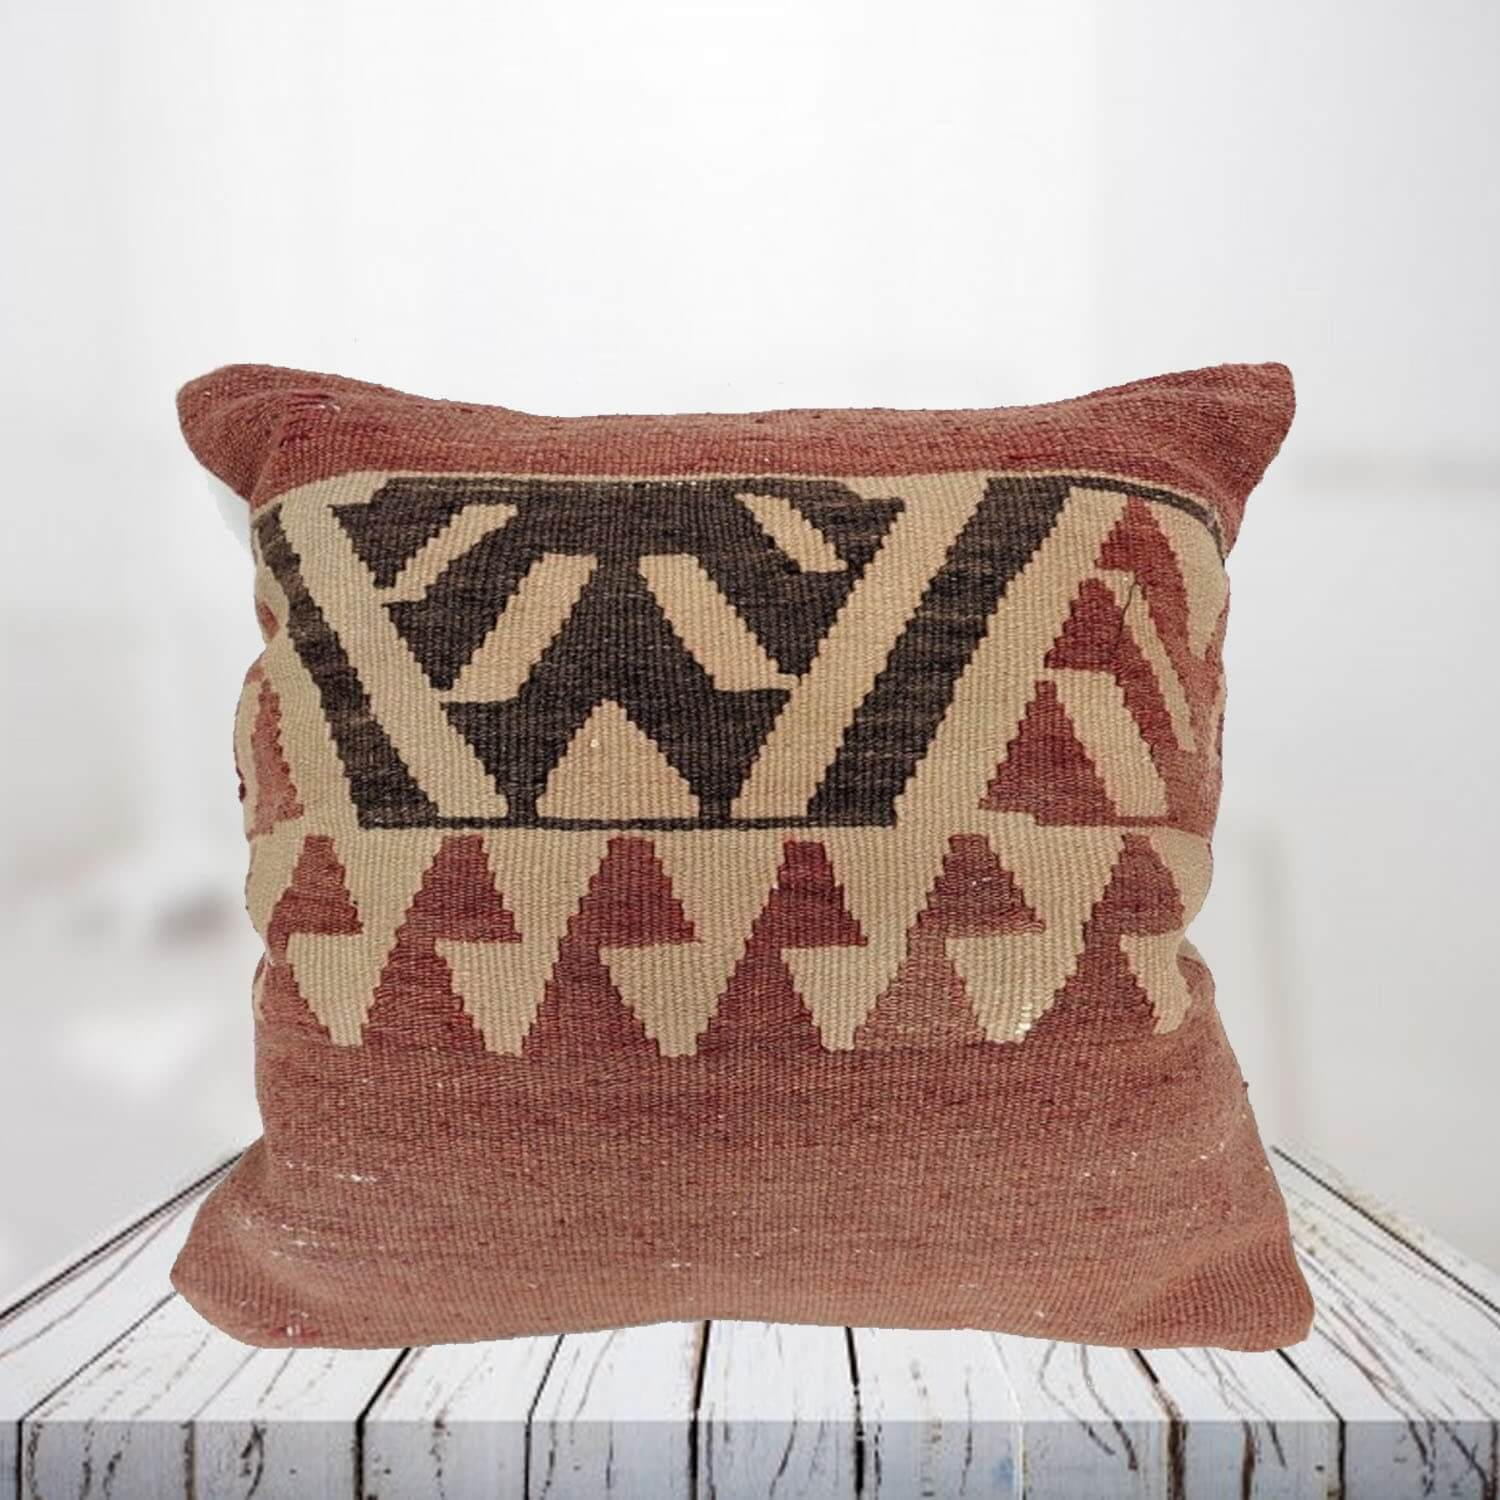 Handwoven Turkish kilim pillow case - SHI_PC18